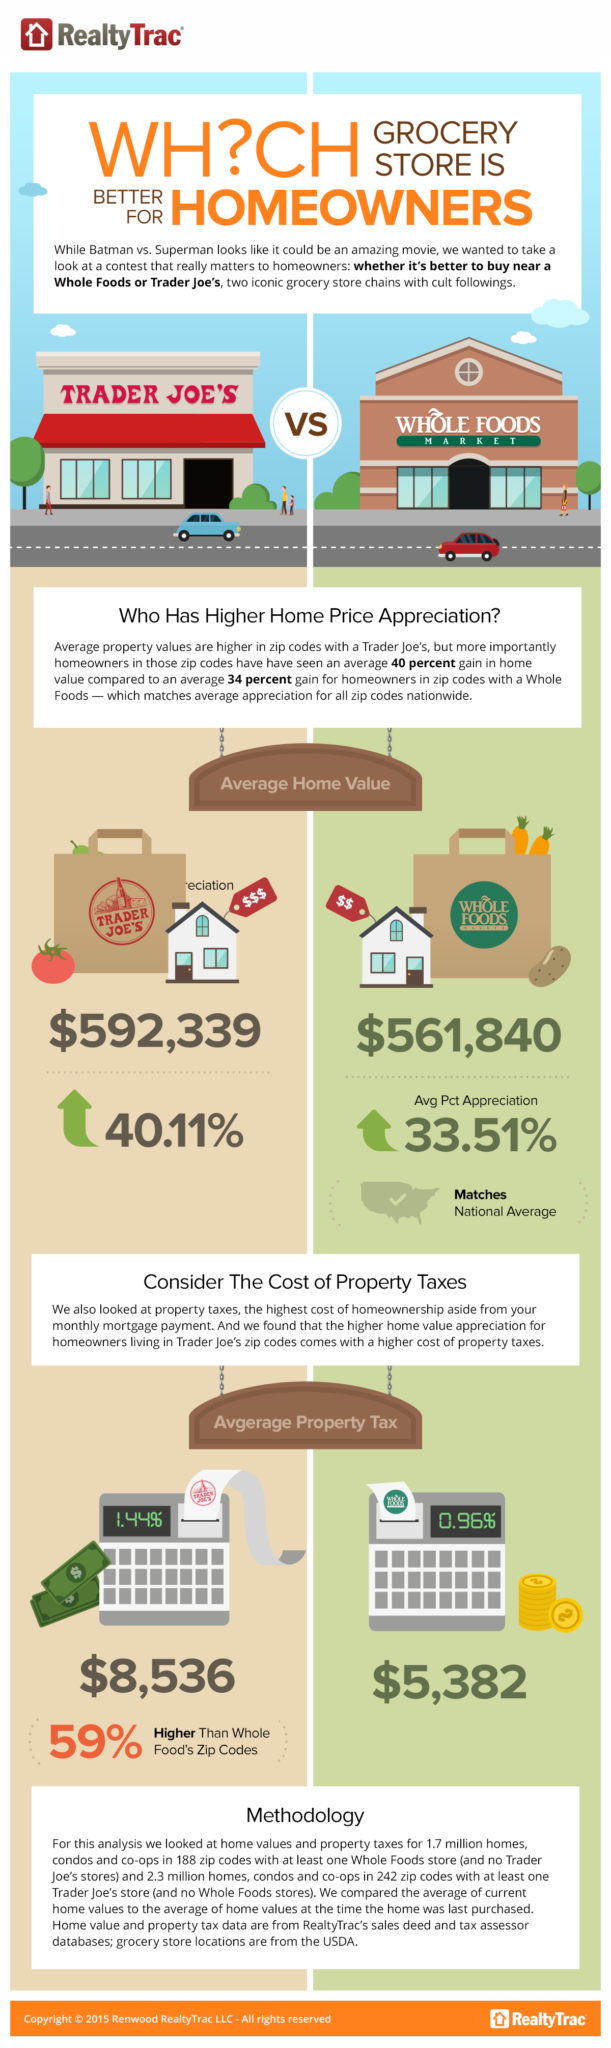 infographic_grocery_data